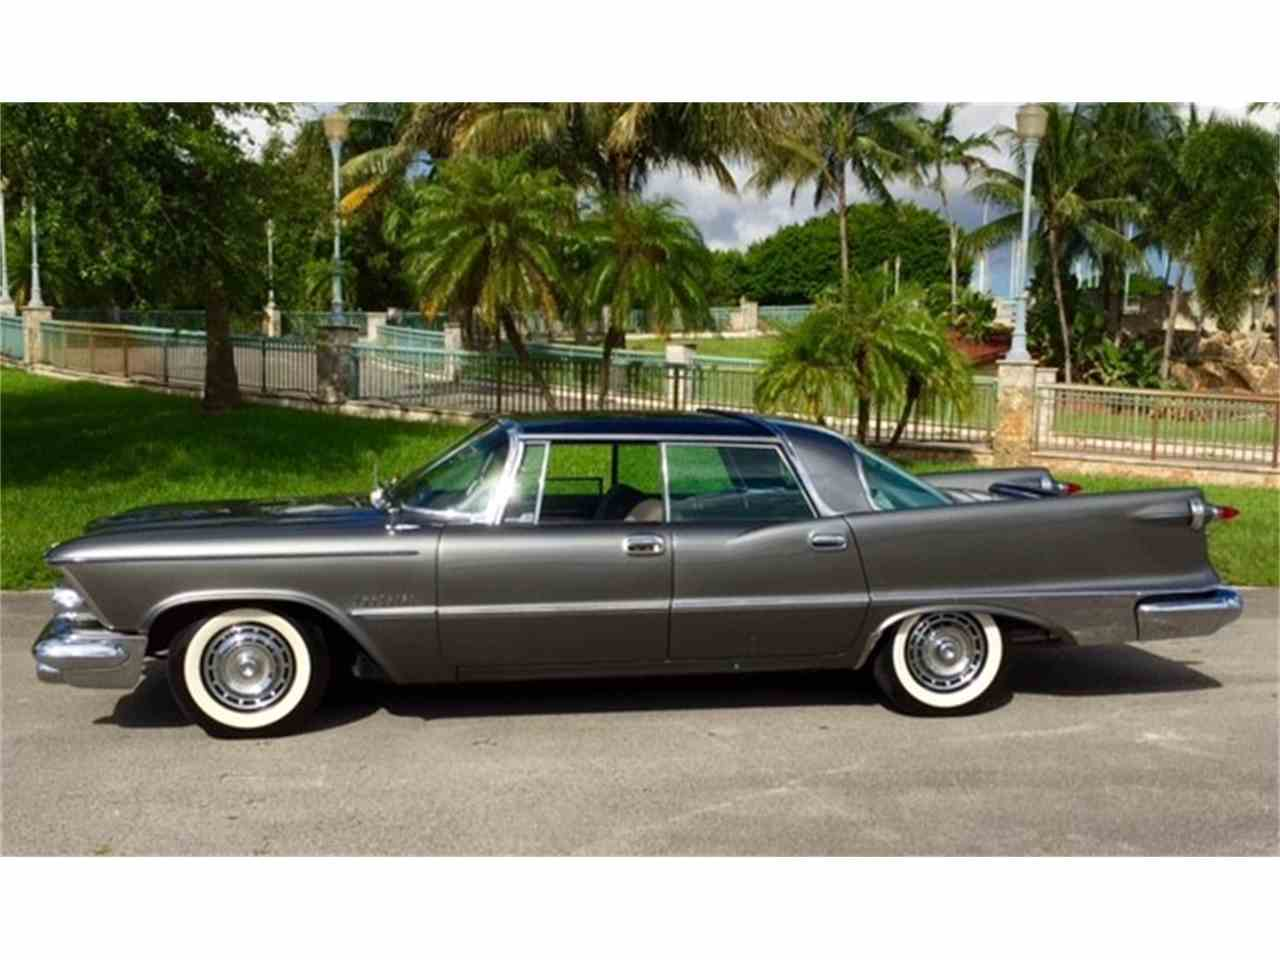 Chrysler Crown Imperial Cars For Sale In Florida